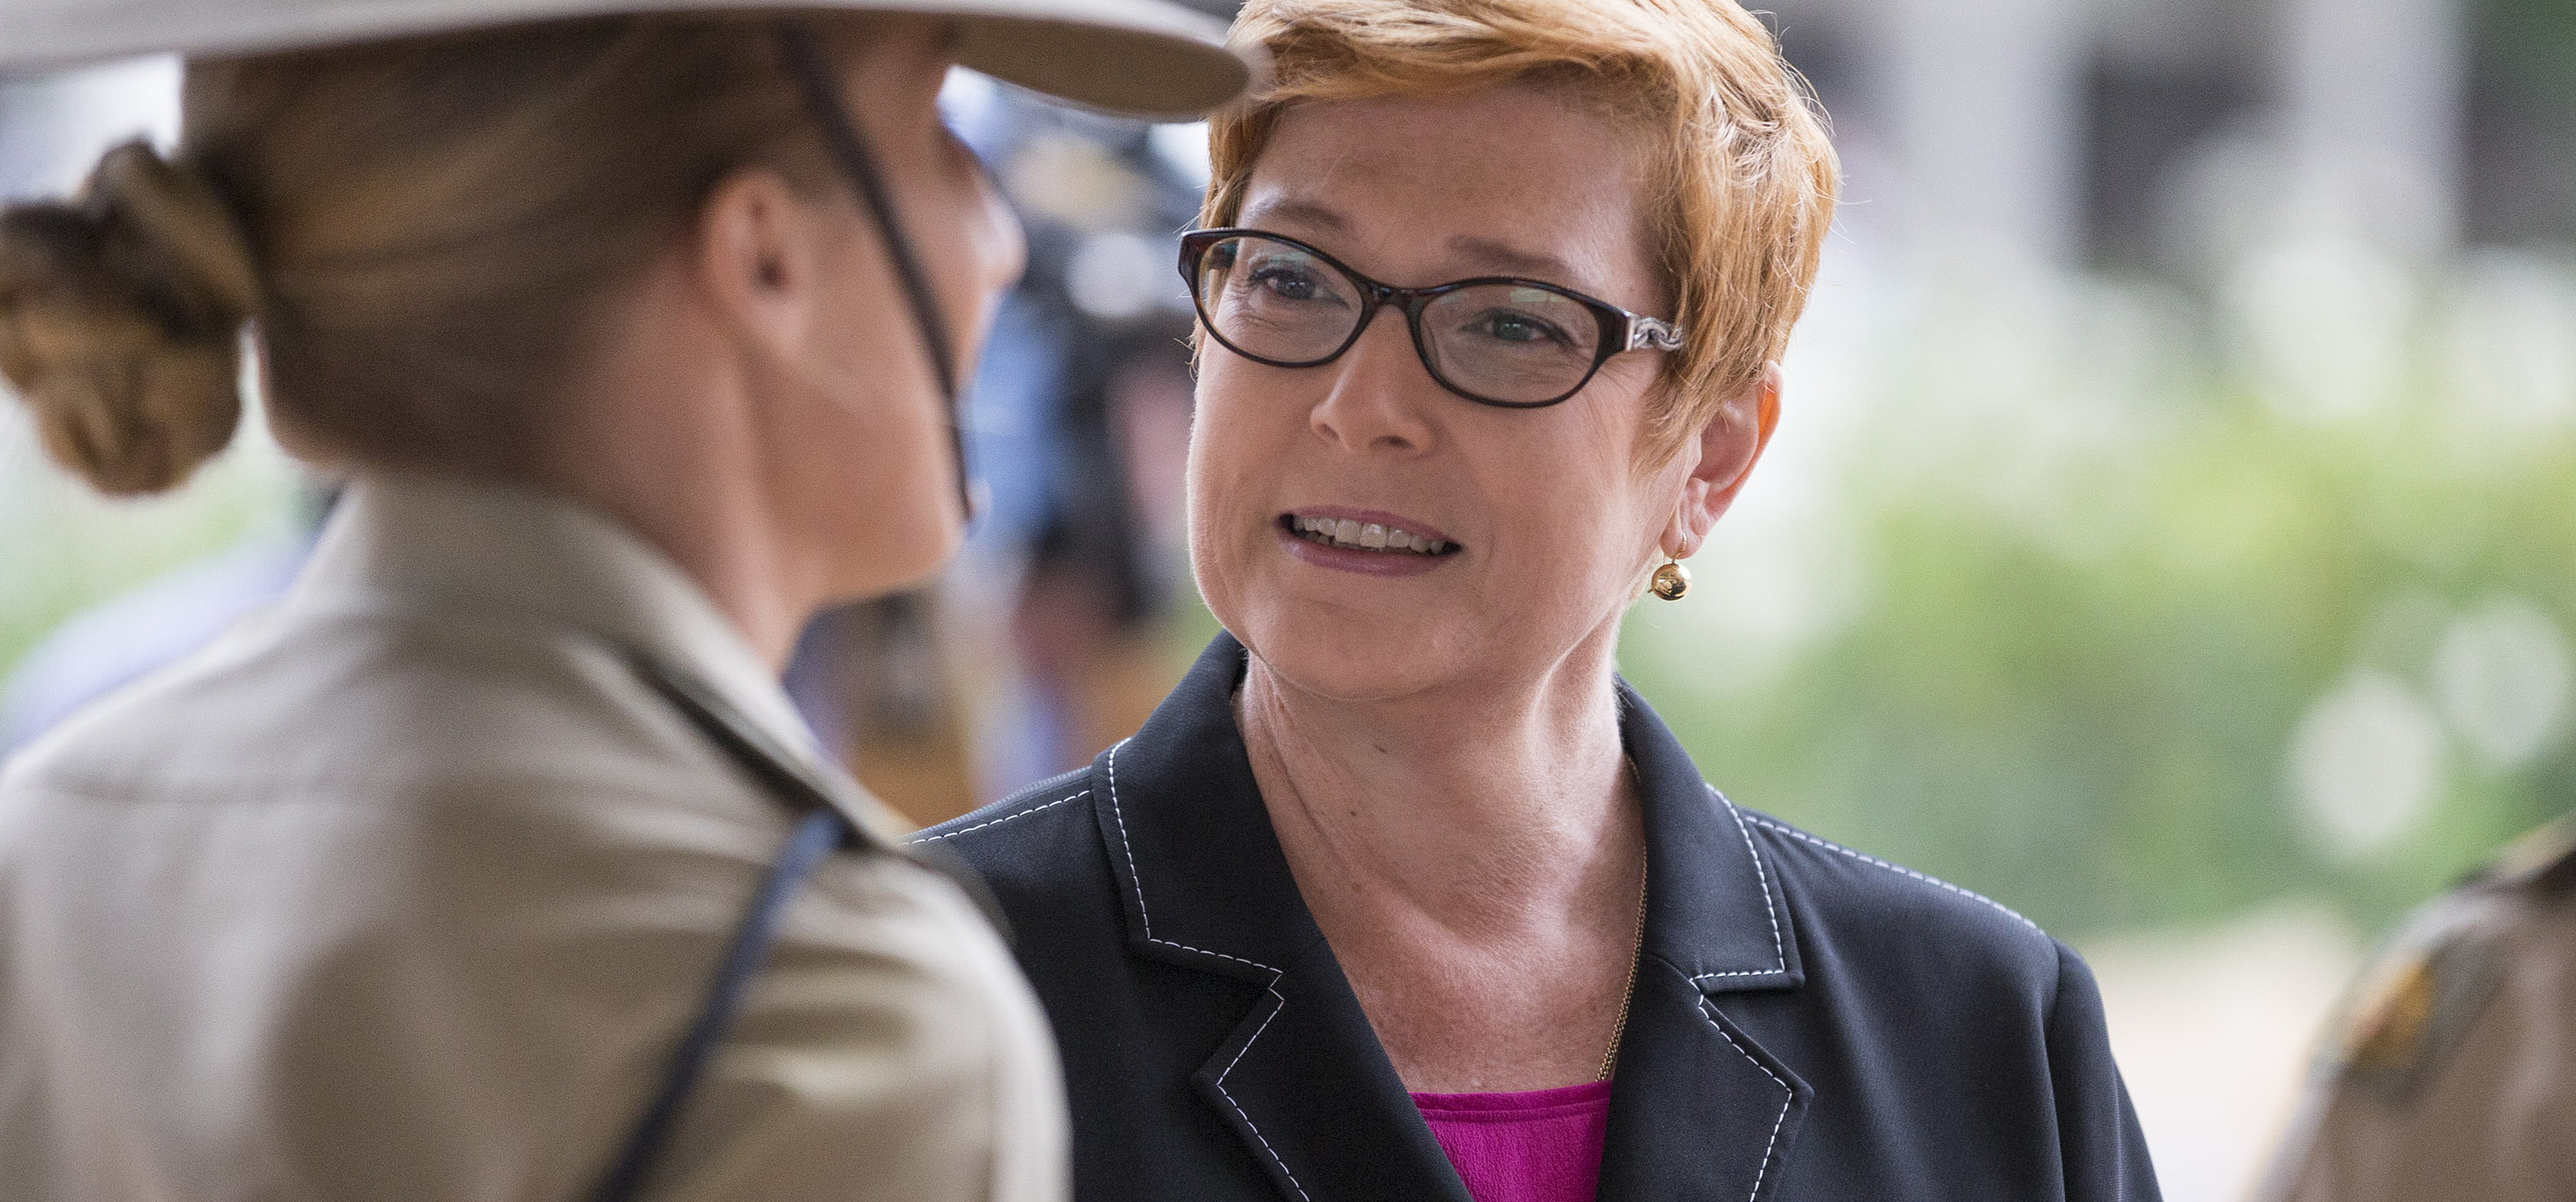 Australian Defence Minister Marise Payne at an International Women's Day event (Photo: Commonwealth of Australia/Department of Defence)